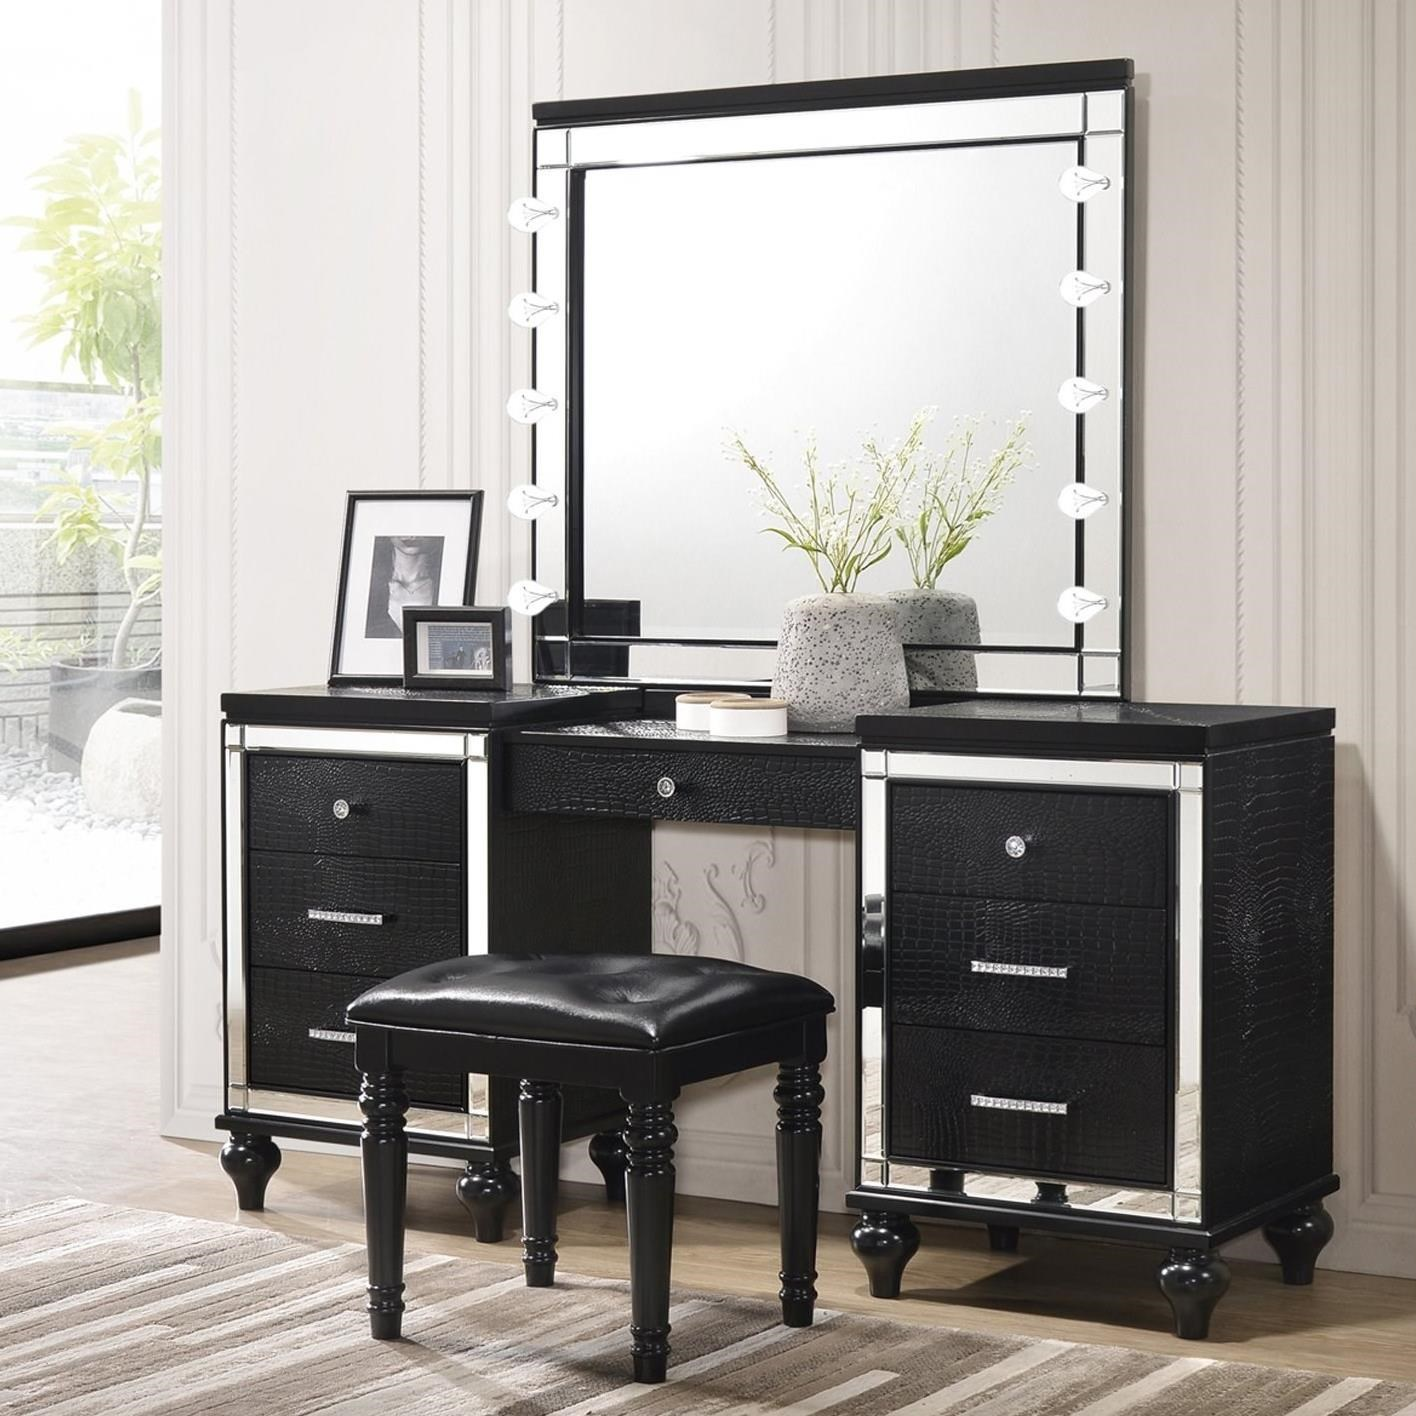 Valentino Vanity, Mirror, and Stool Set by New Classic at Beck's Furniture